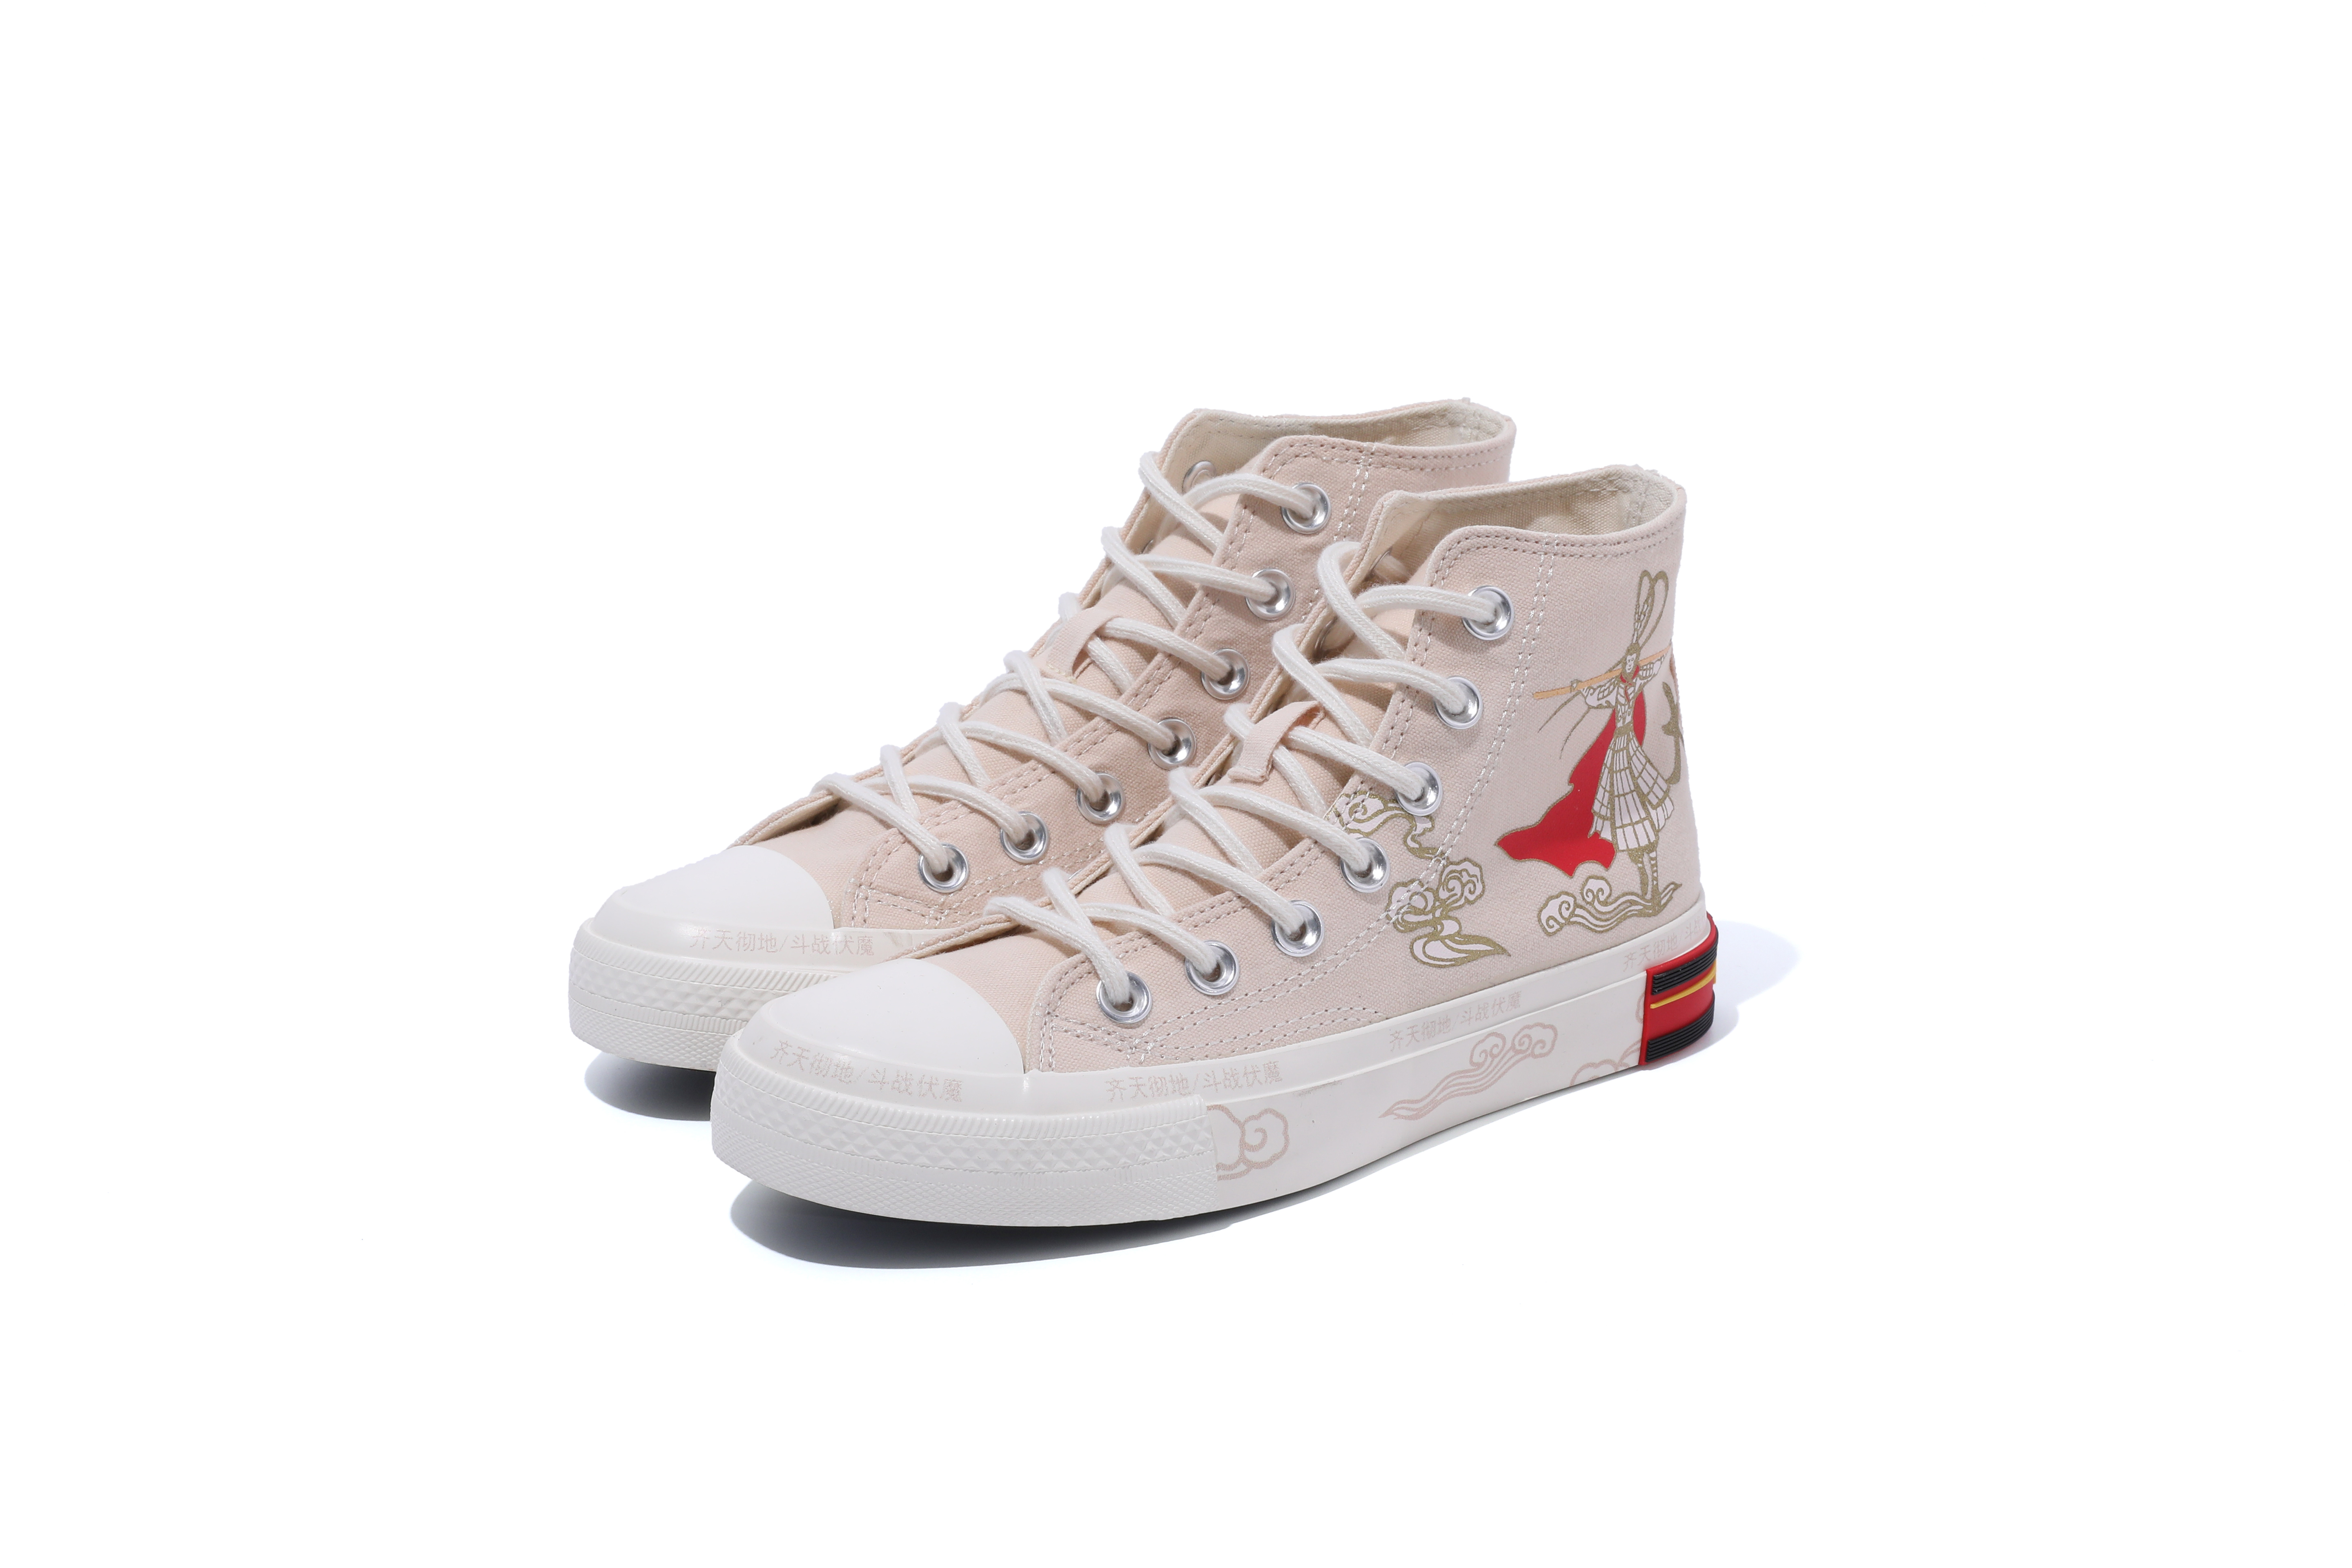 Made in China low price sports classic shoes ladies shoes 2020 sneakers